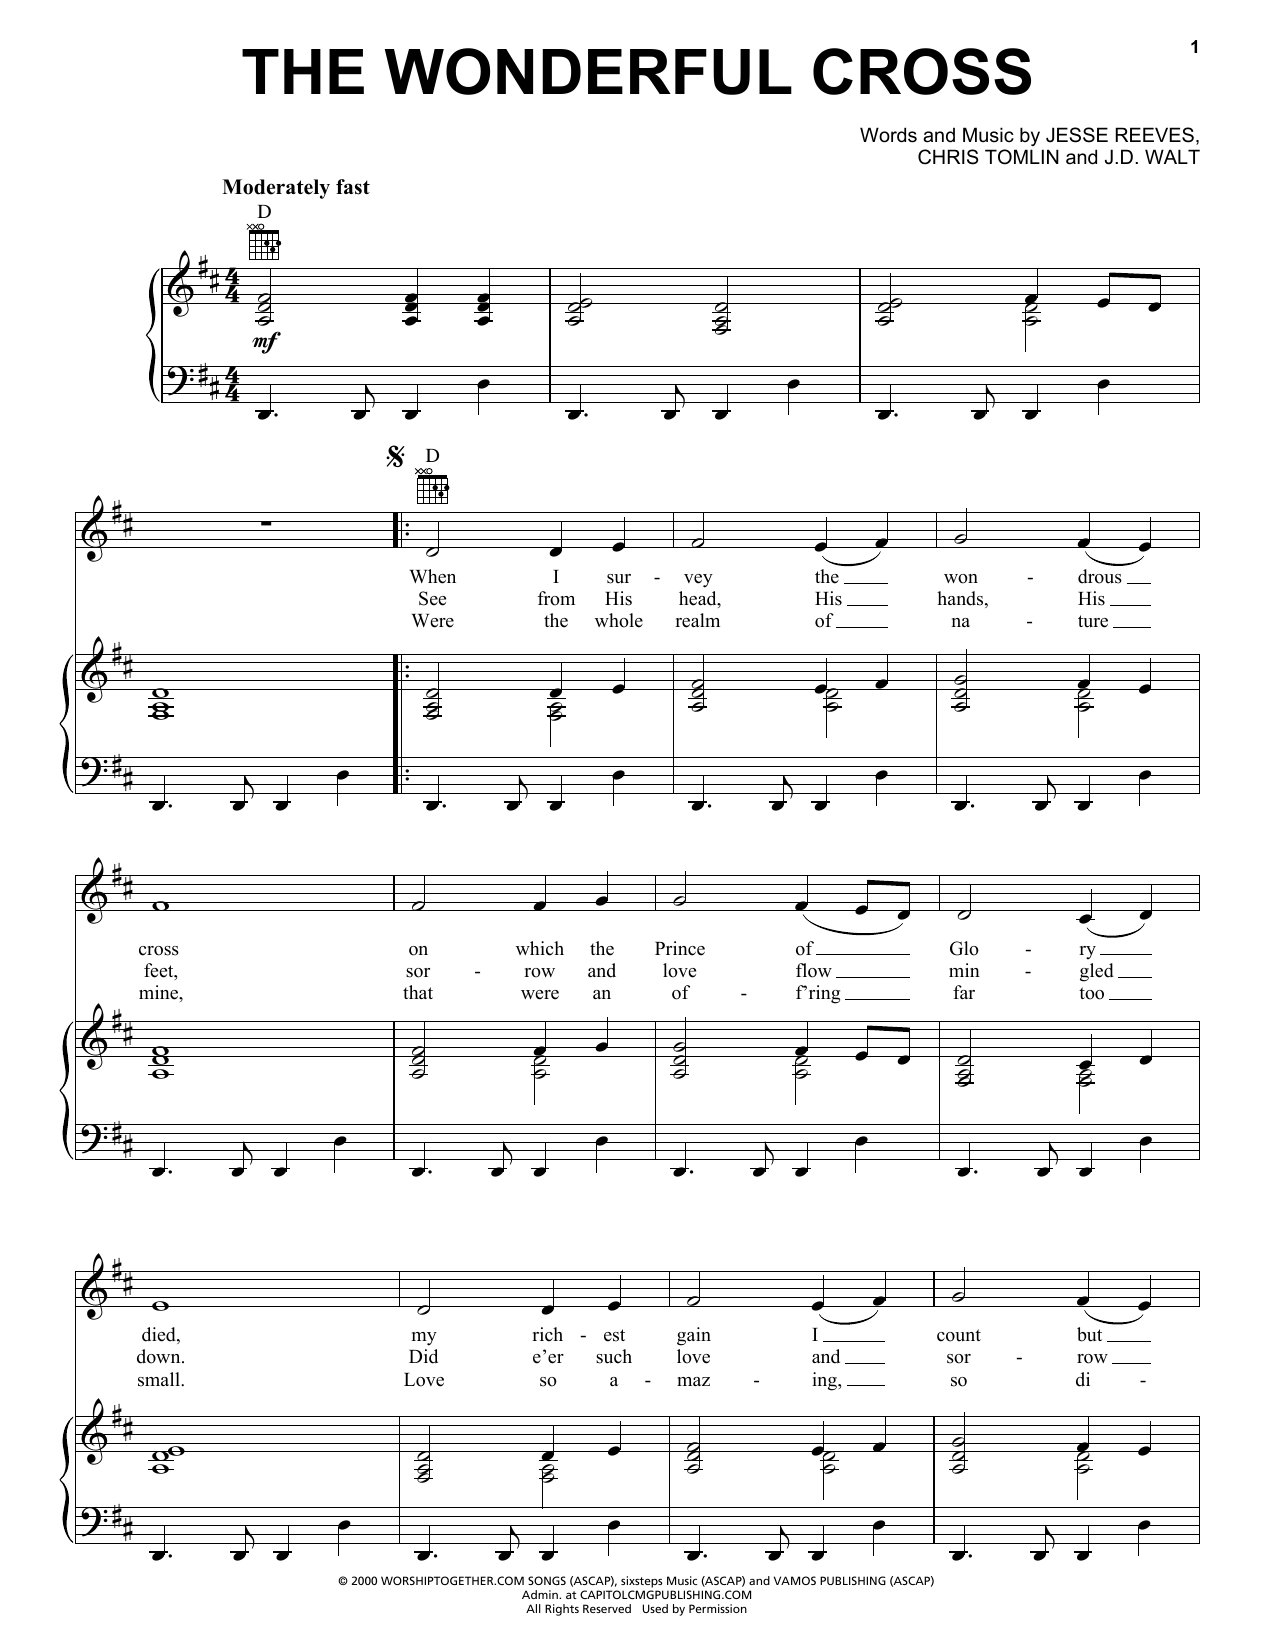 Chris Tomlin The Wonderful Cross sheet music notes and chords - download printable PDF.